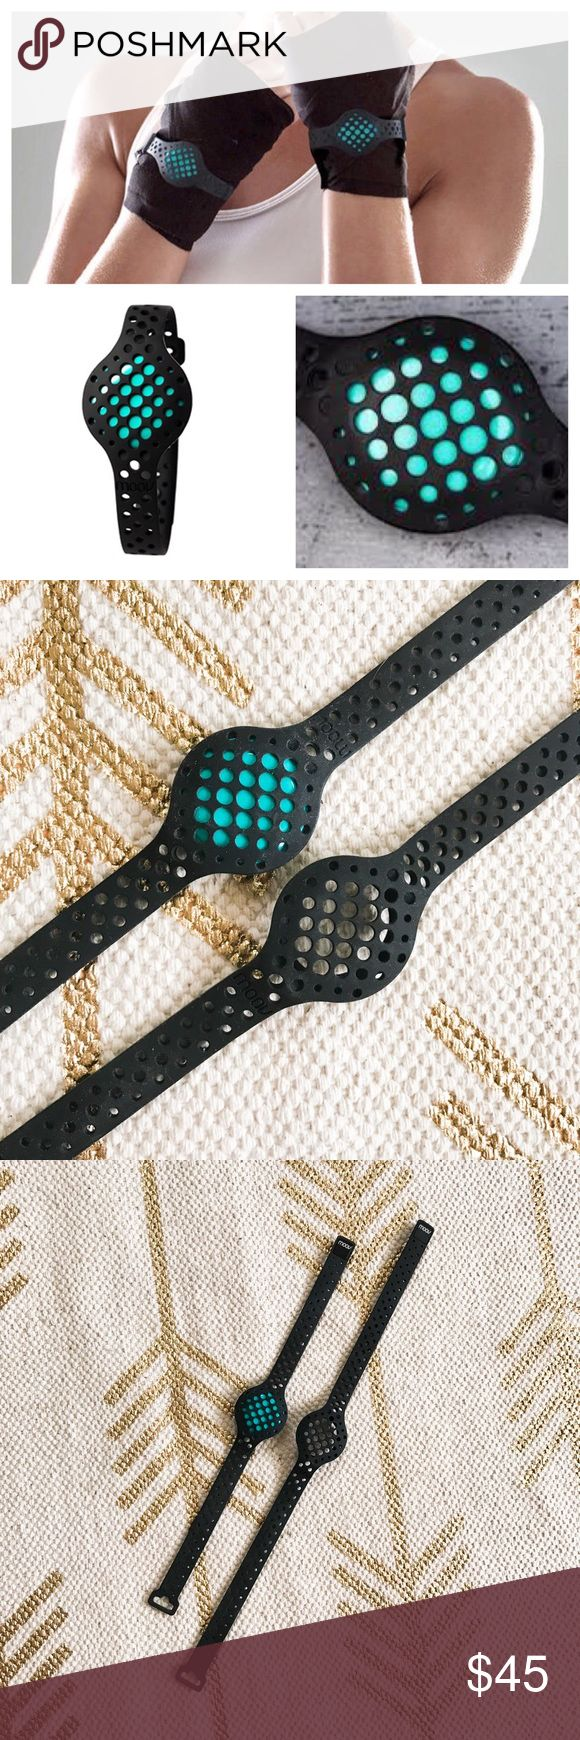 Moov Now Fitness tracker bracelet and anklet blue Like new moov now in blue/teal. Comes with two bracelets one long one short (can be used on ankle). This was paired with the app and worn for a day or two but then never used. Accessories Watches